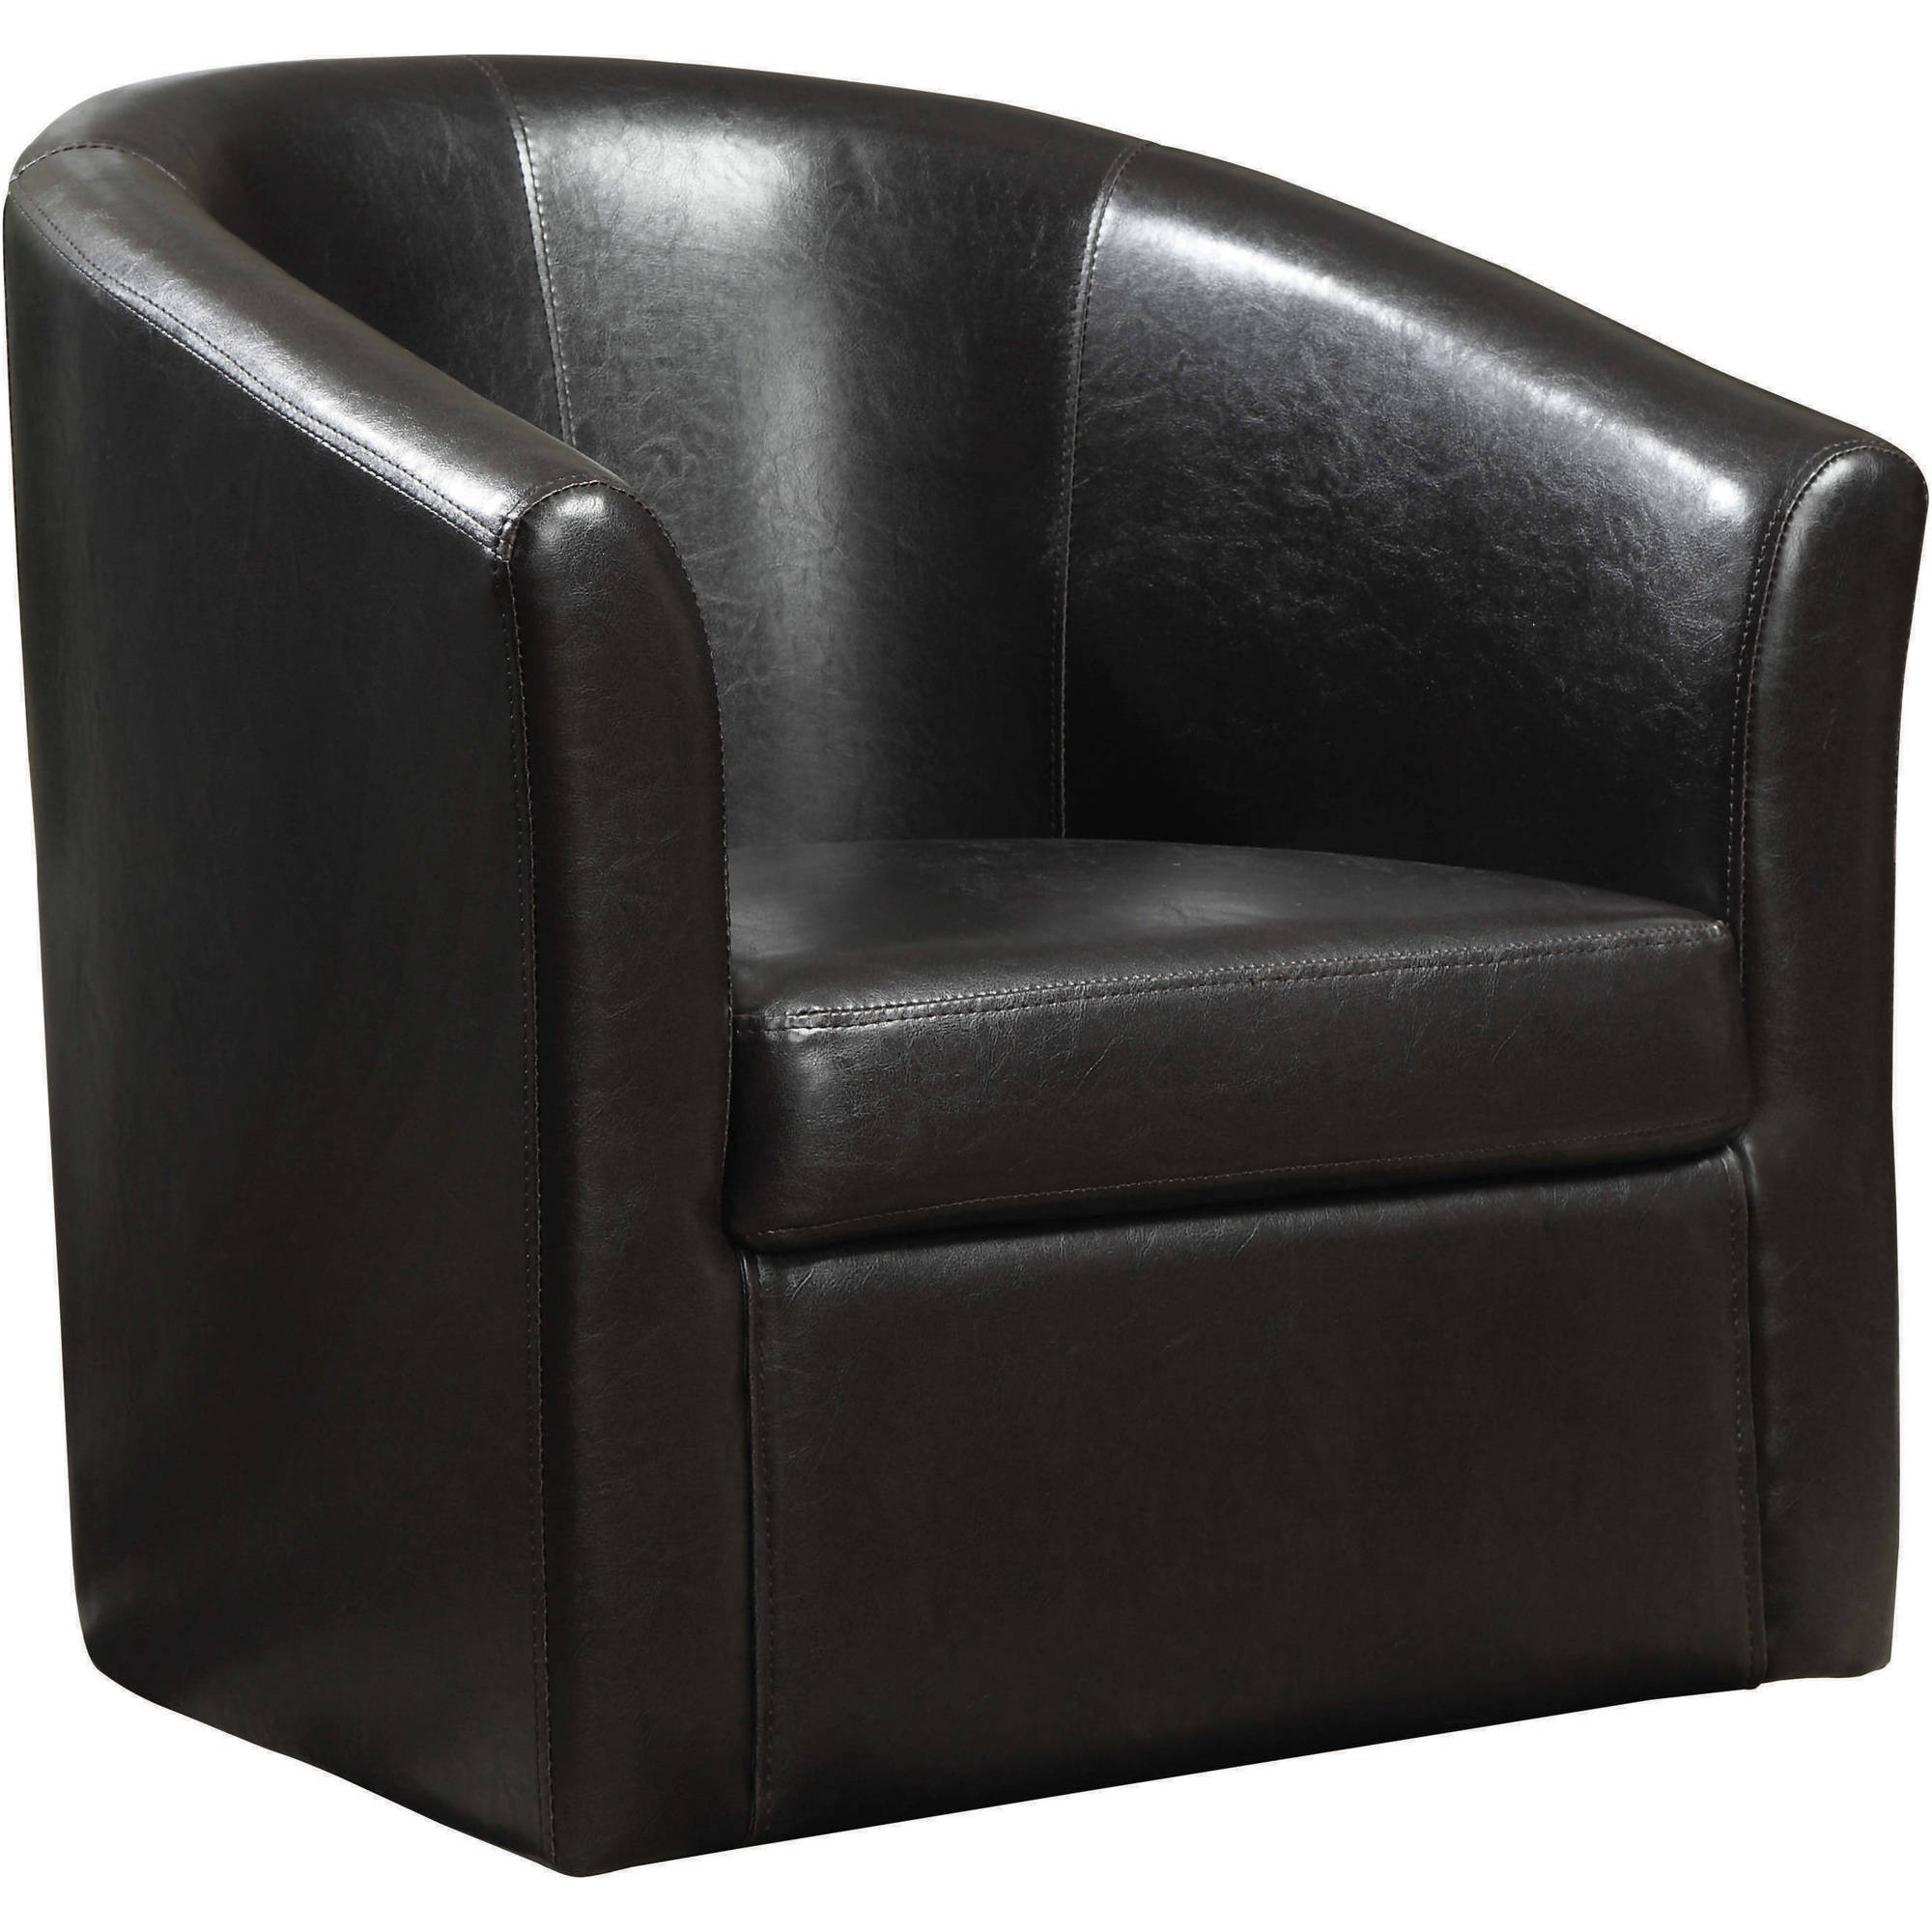 Coaster Company Accent Chair, Dark Brown Leatherette by Coaster Company